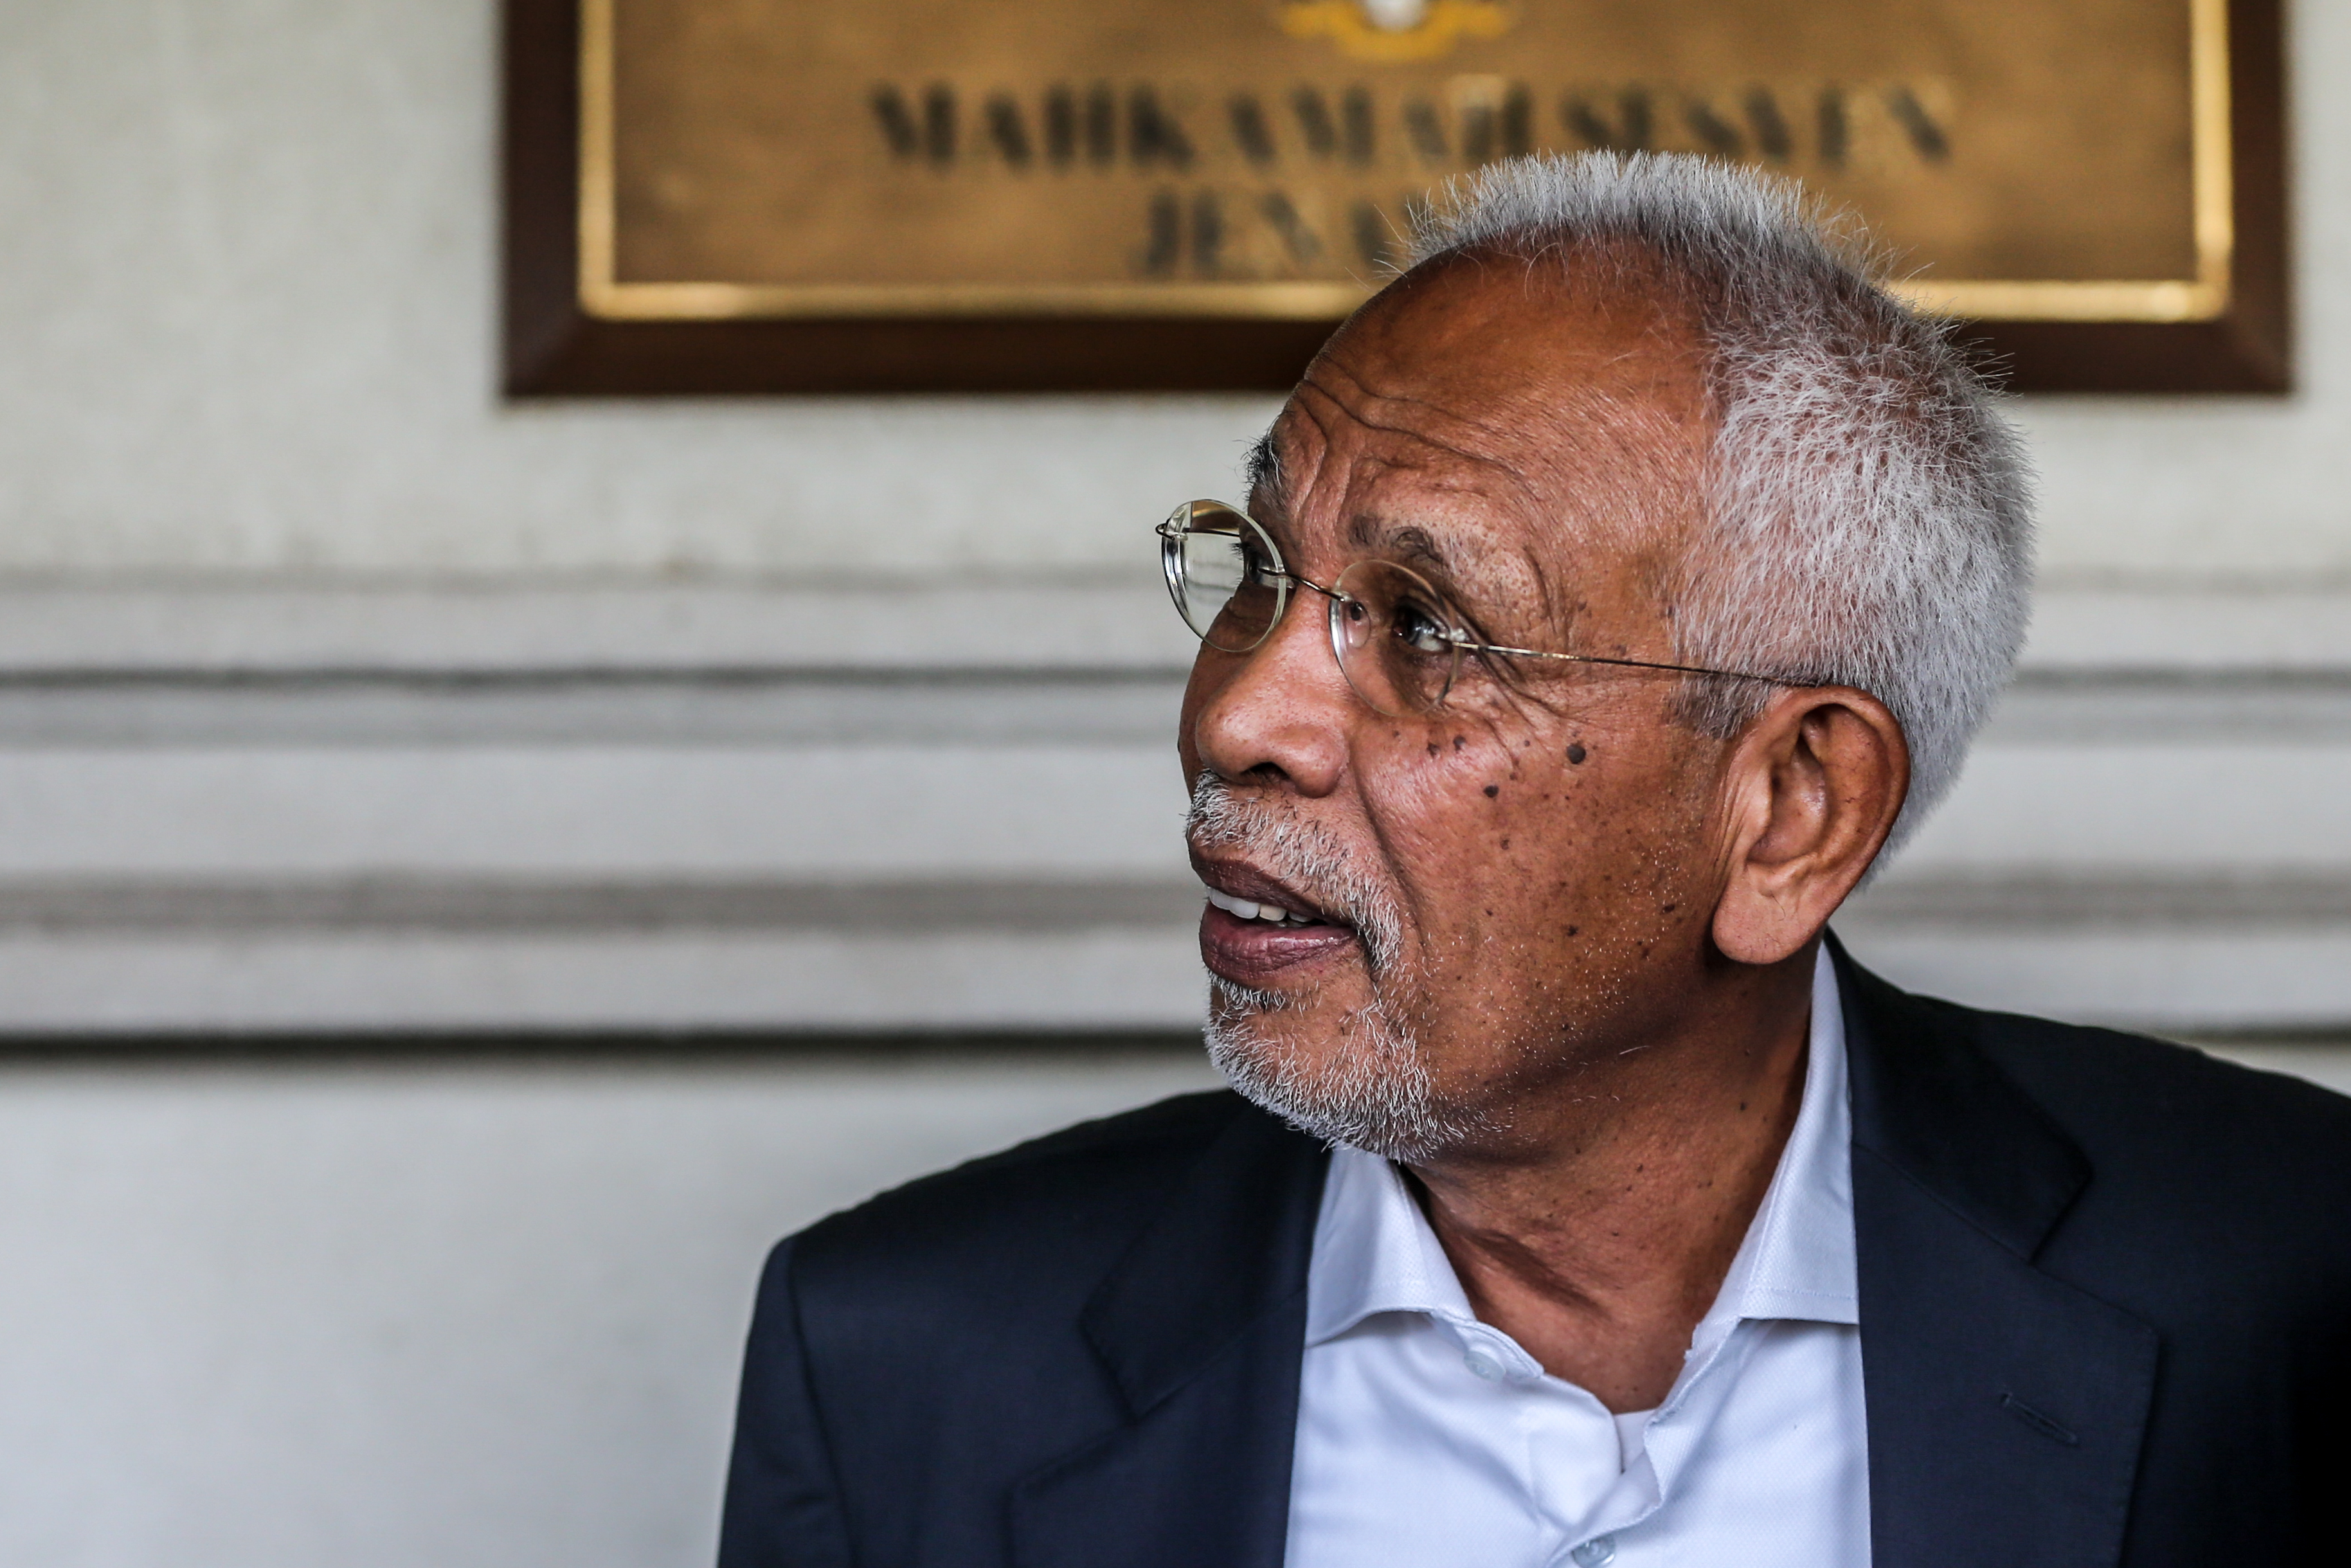 Tan Sri Shahrir Samad is pictured at the Kuala Lumpur High Court January 21, 2020. — Picture by Firdaus Latif